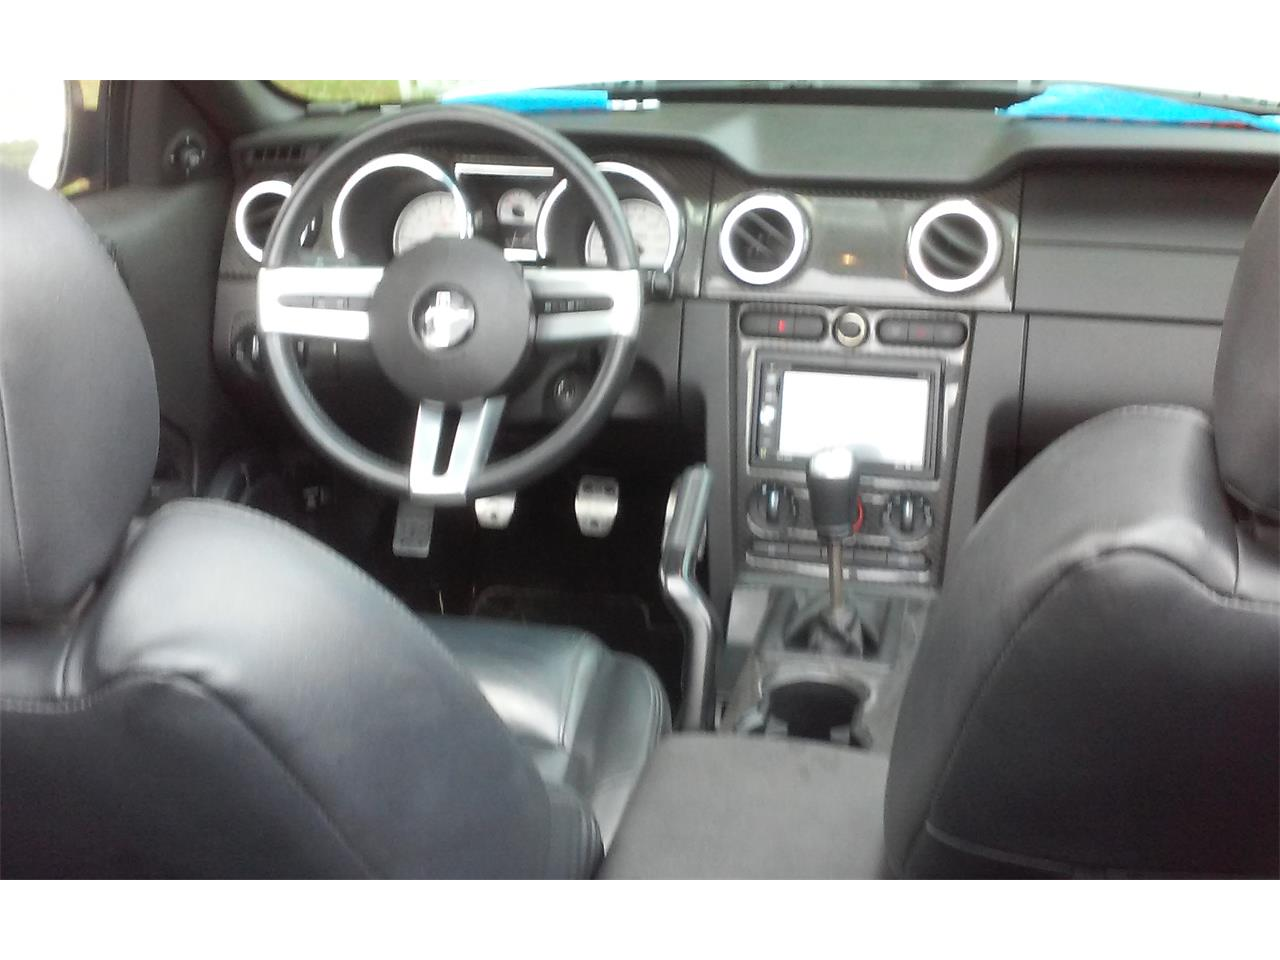 2007 Ford Mustang (Roush) (CC-906545) for sale in St Marks, Florida